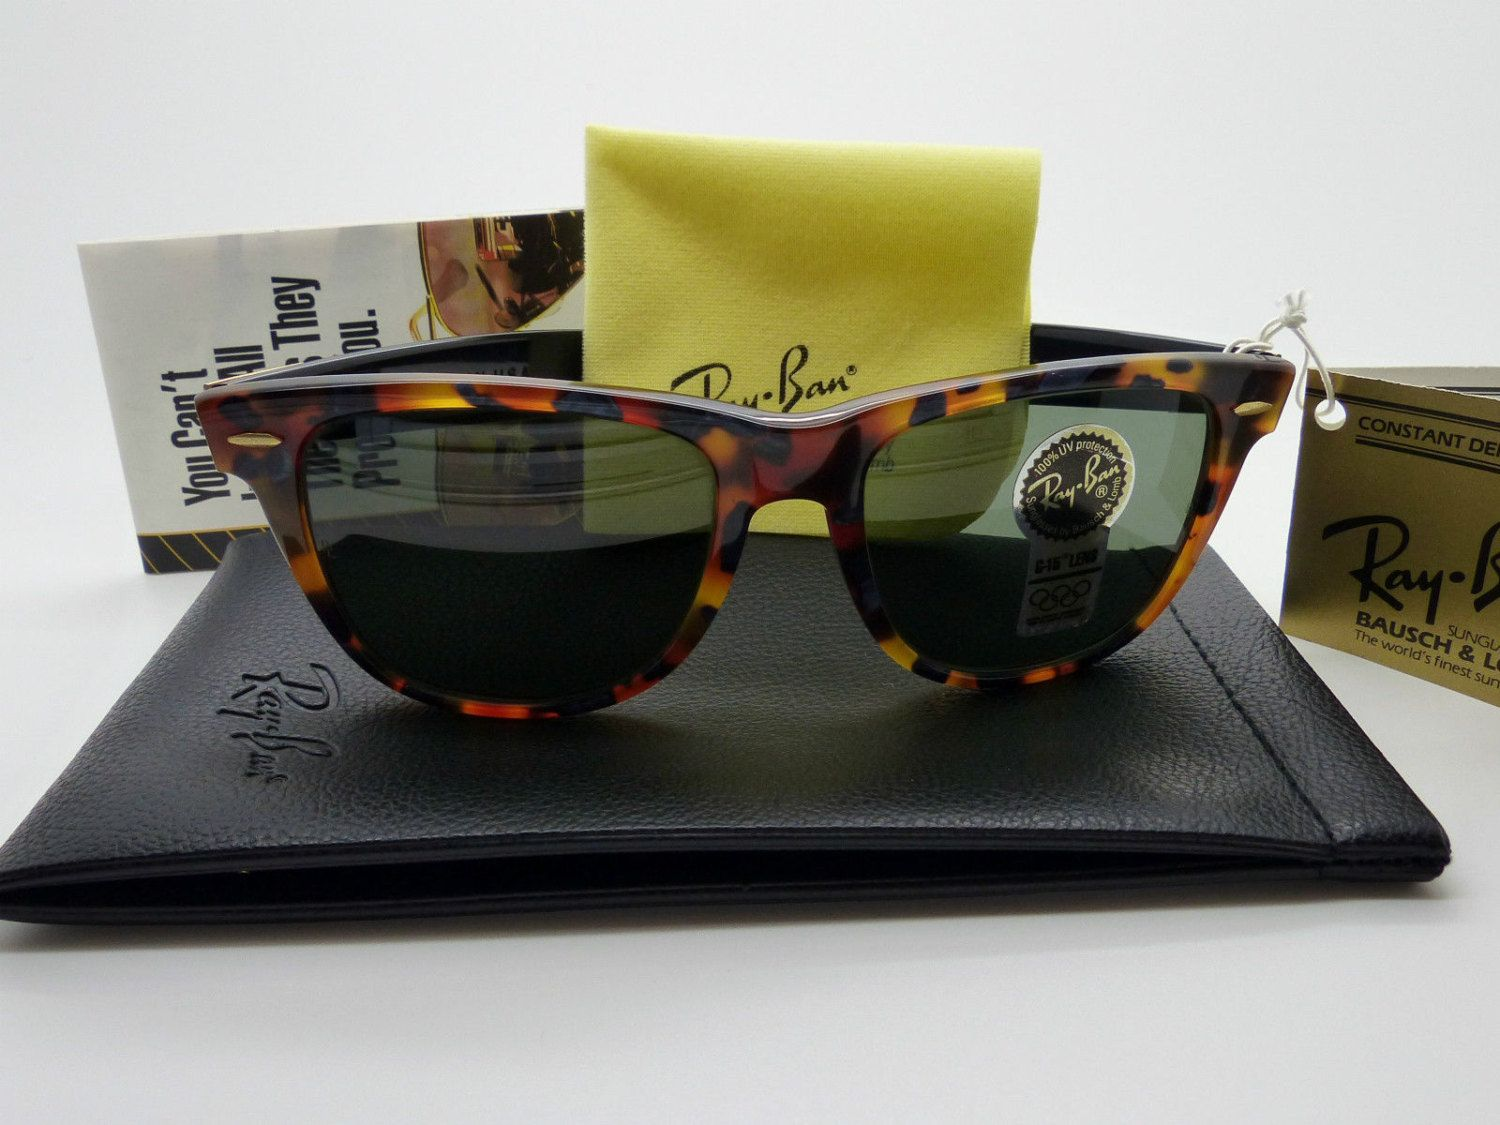 69c6465f60 Vintage B L Ray Ban Wayfarer II Limited Deluxe G15 Lens NOS Very Rare! by  VSOx on Etsy